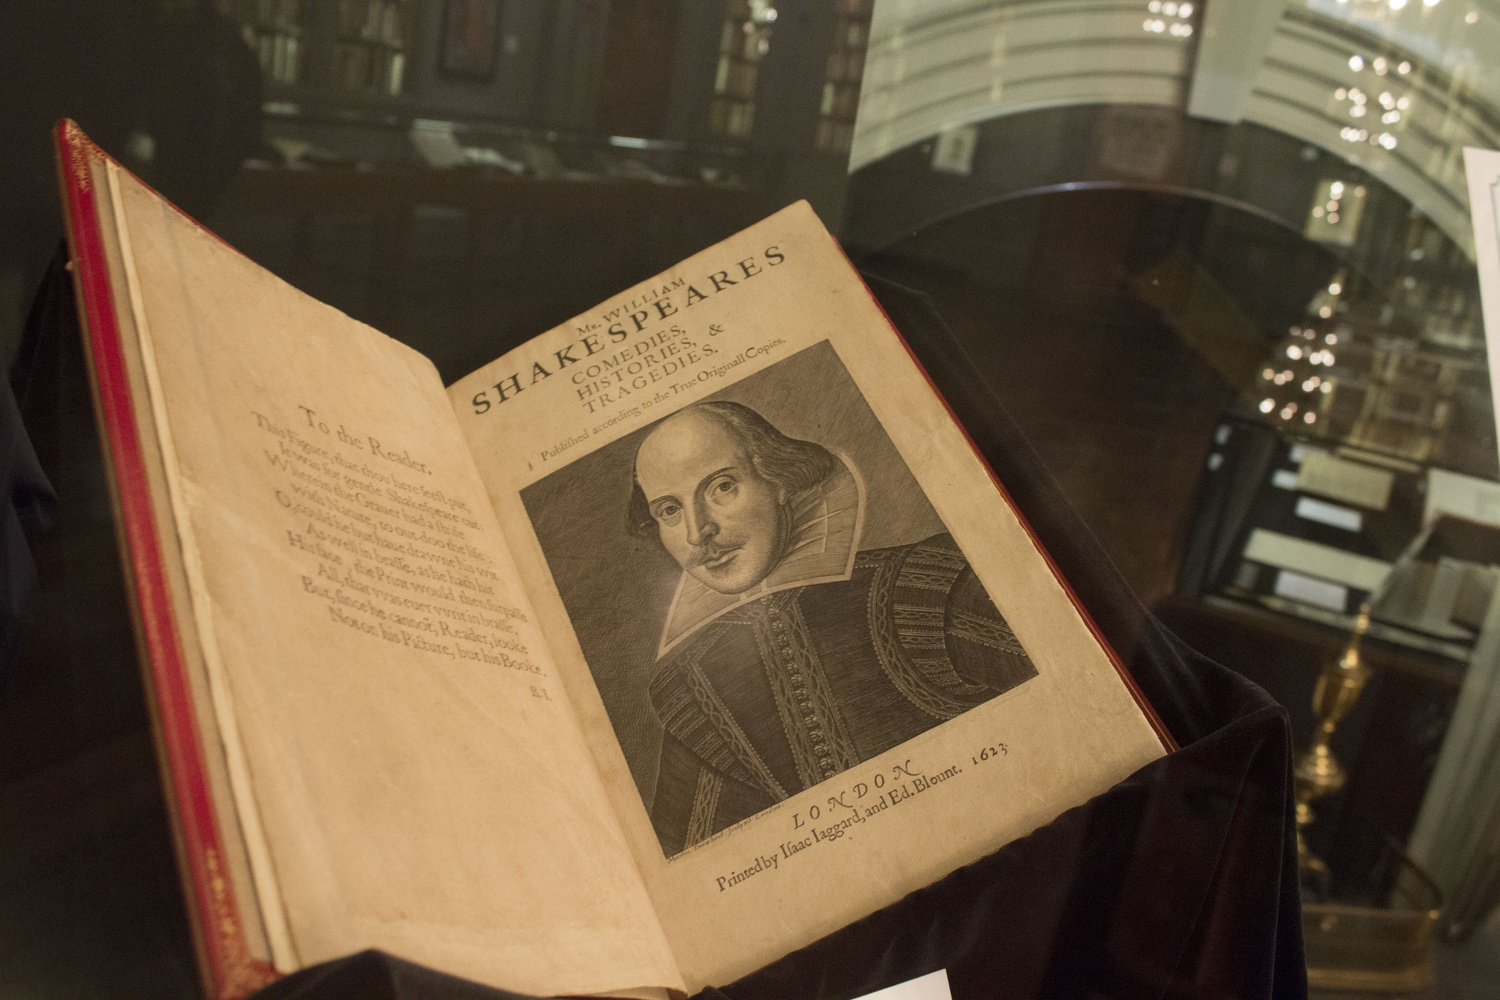 'Mr. William Shakespeares comedies, histories, & tragedies:published according to the true originall copies' sits on display in Houghton Library